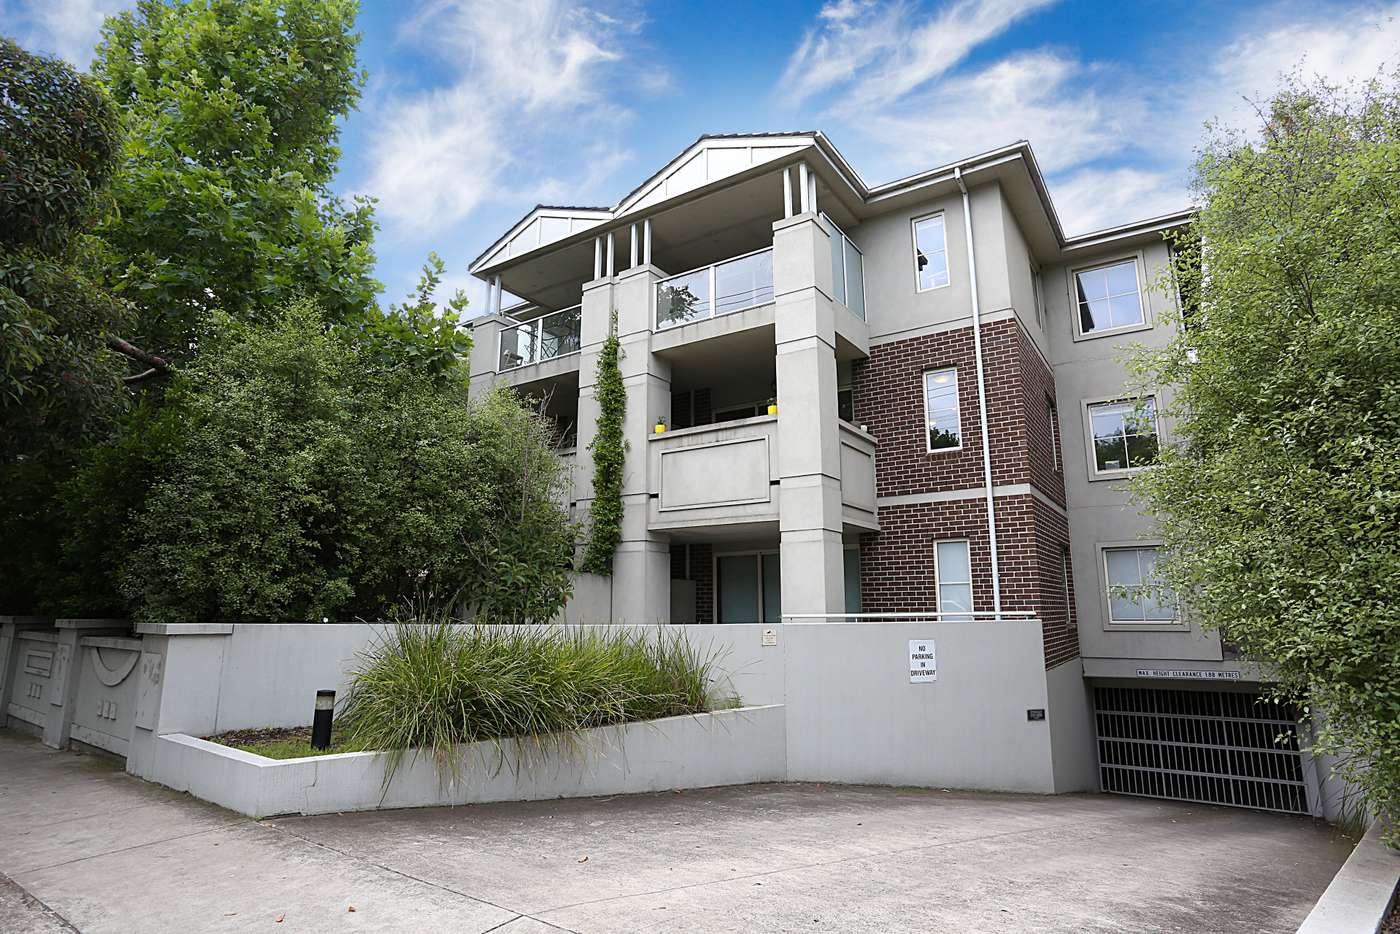 Main view of Homely apartment listing, 17/327 Dandenong Road, Prahran VIC 3181